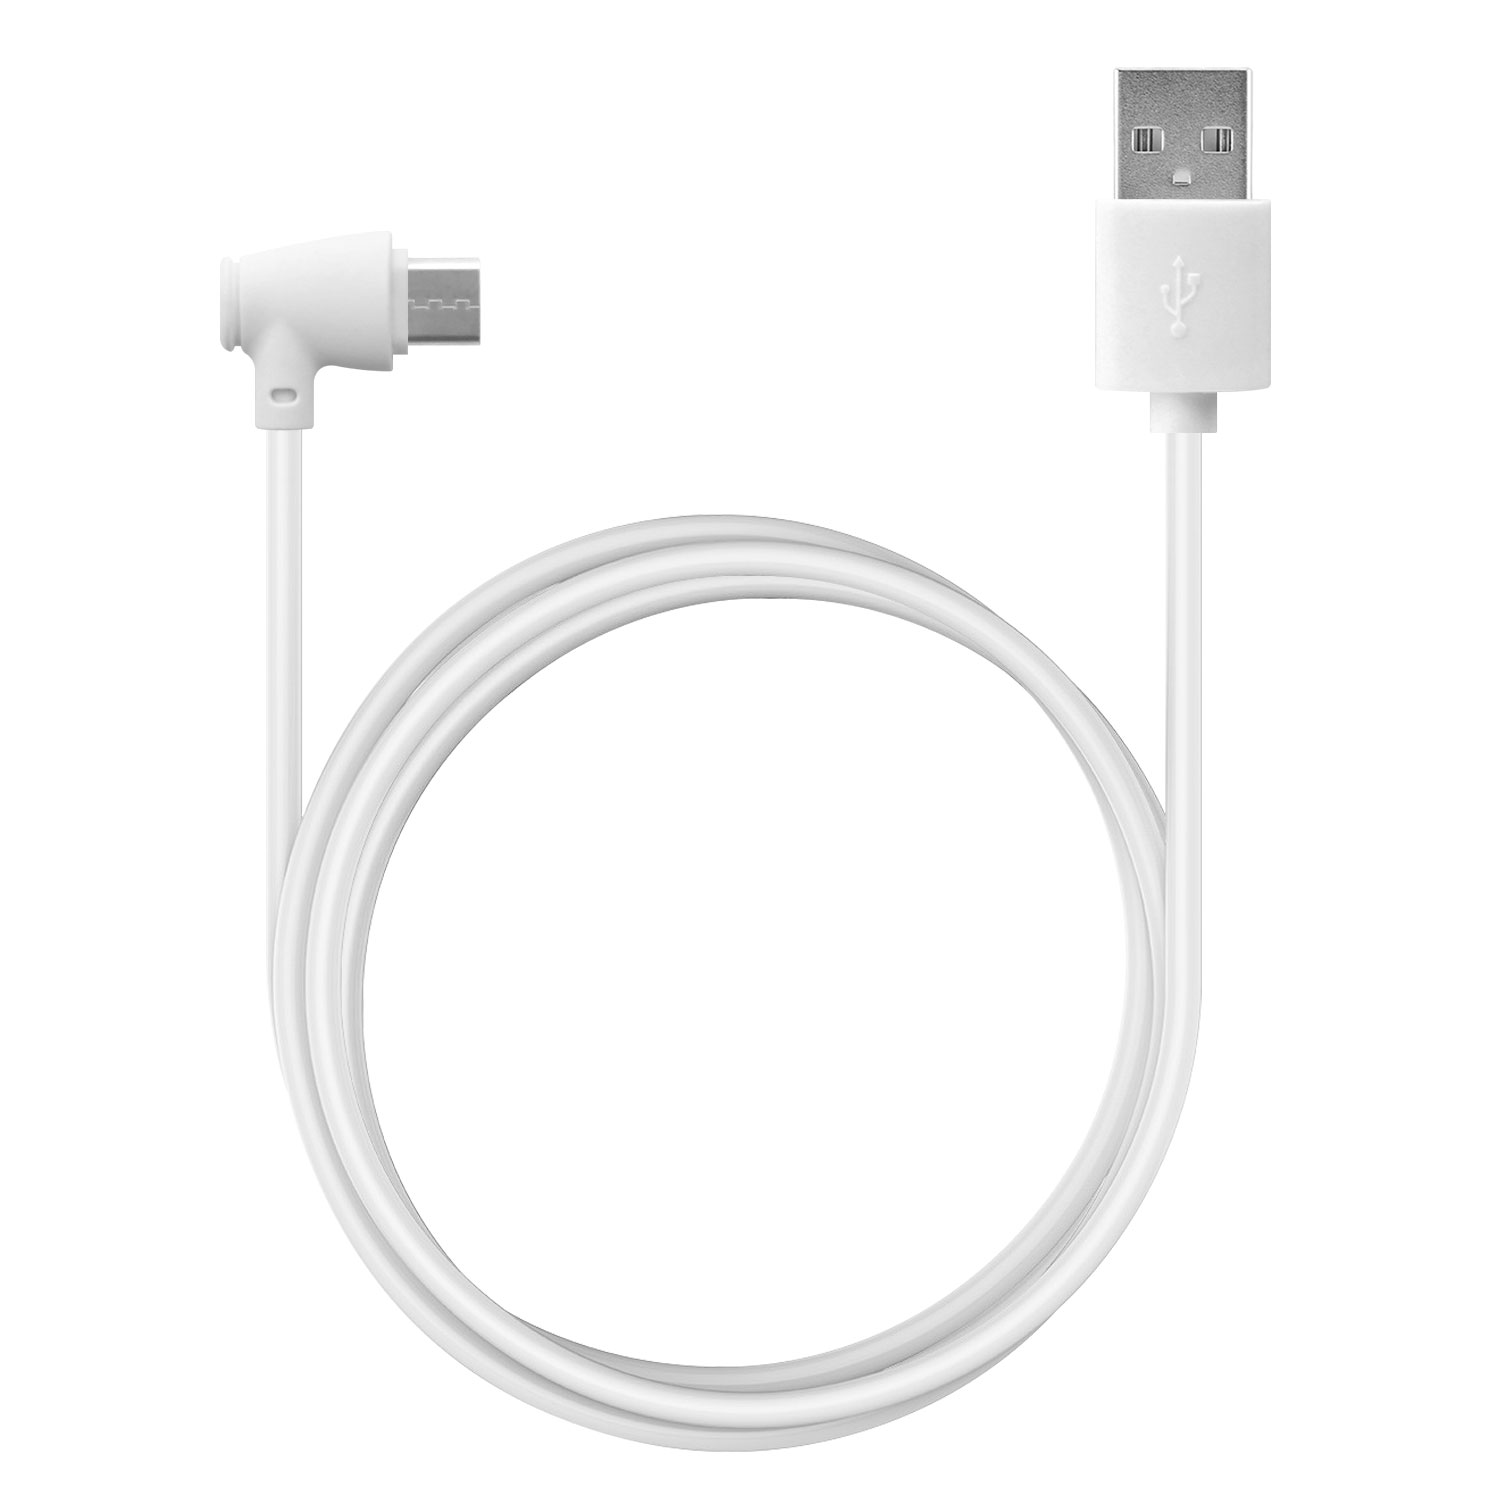 Samsung Galaxy A20 USB Type-C To USB Type-A Data Charging Cable White 3.3ft Angled